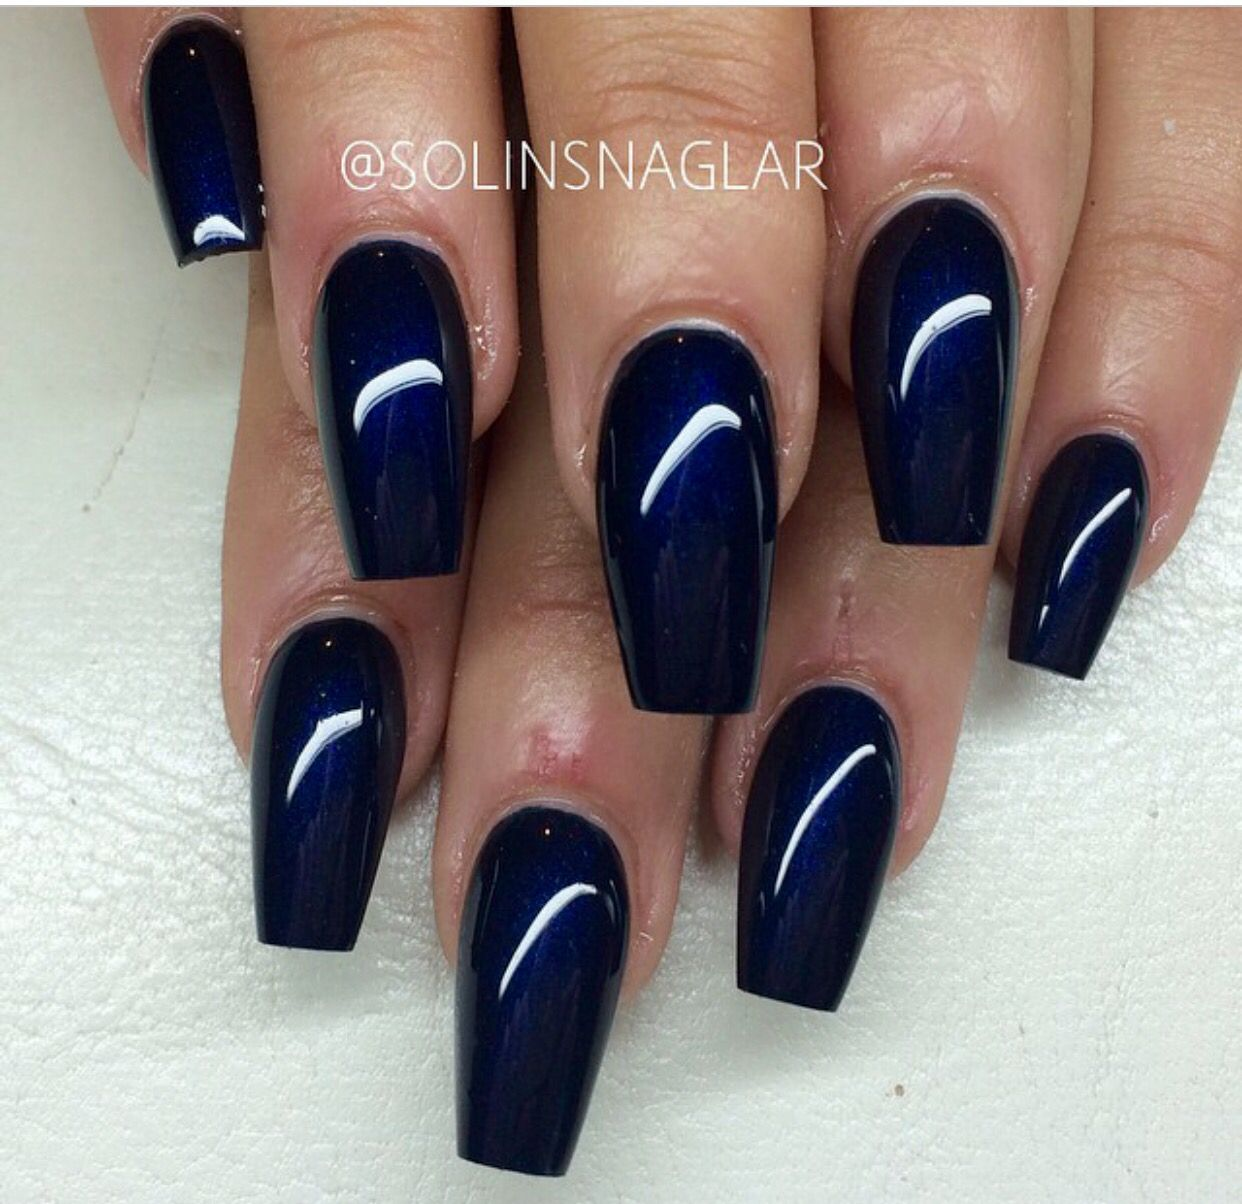 Pin by Treandra Williams on nails and toes oh my!!! | Pinterest | Lips